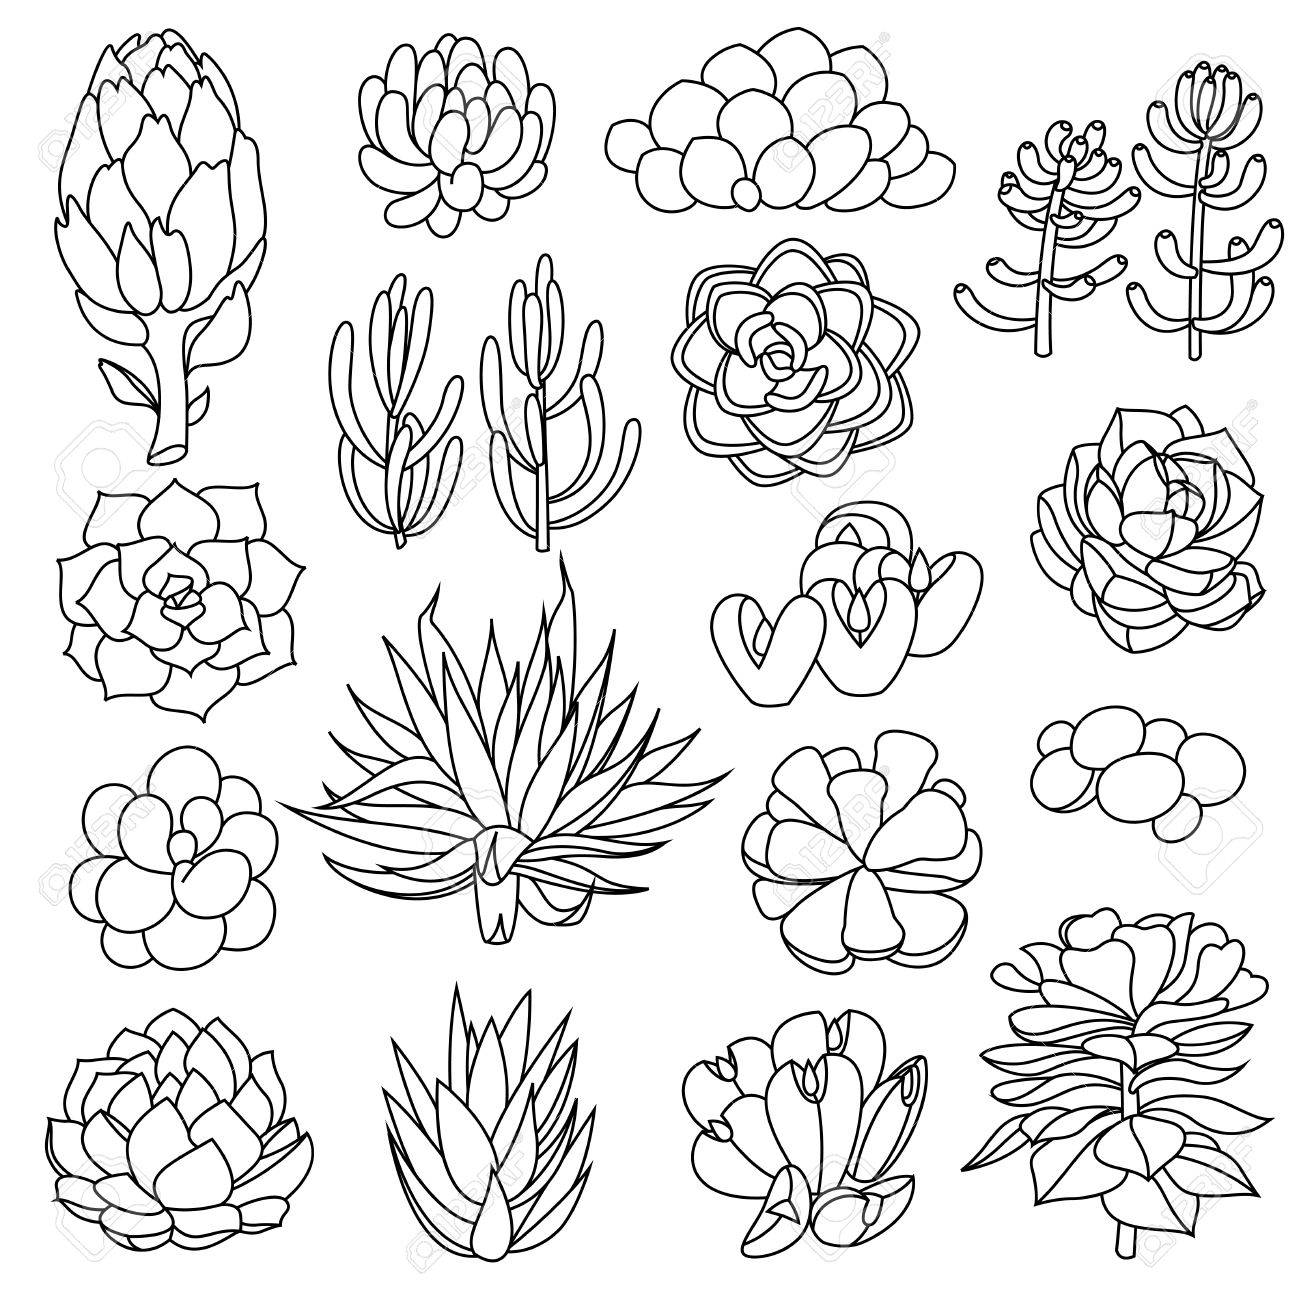 Set Of Succulents And Artichokes Leaves And Petals Isolated Royalty Free Cliparts Vectors And Stock Illustration Image 69821974